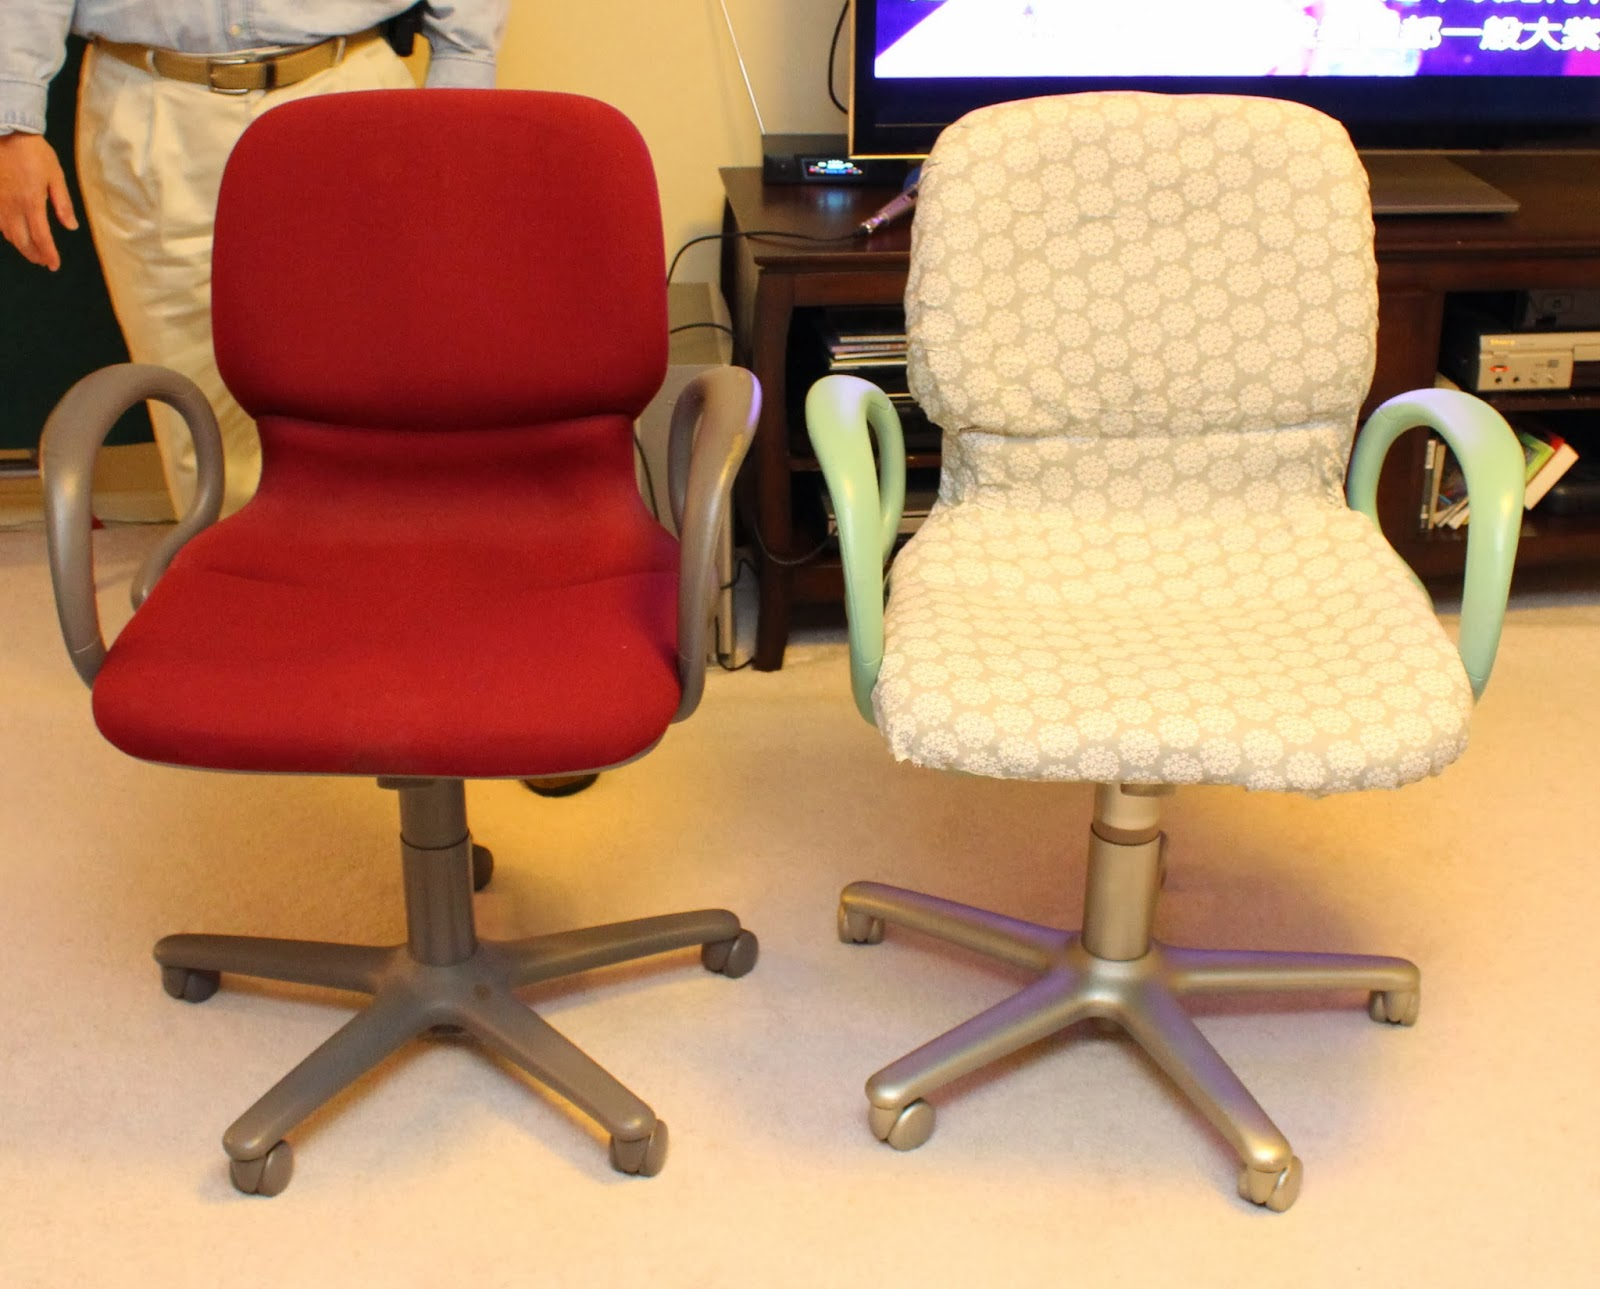 Reupholster Office Chair From Woo To You Diy Reupholstered Office Chair